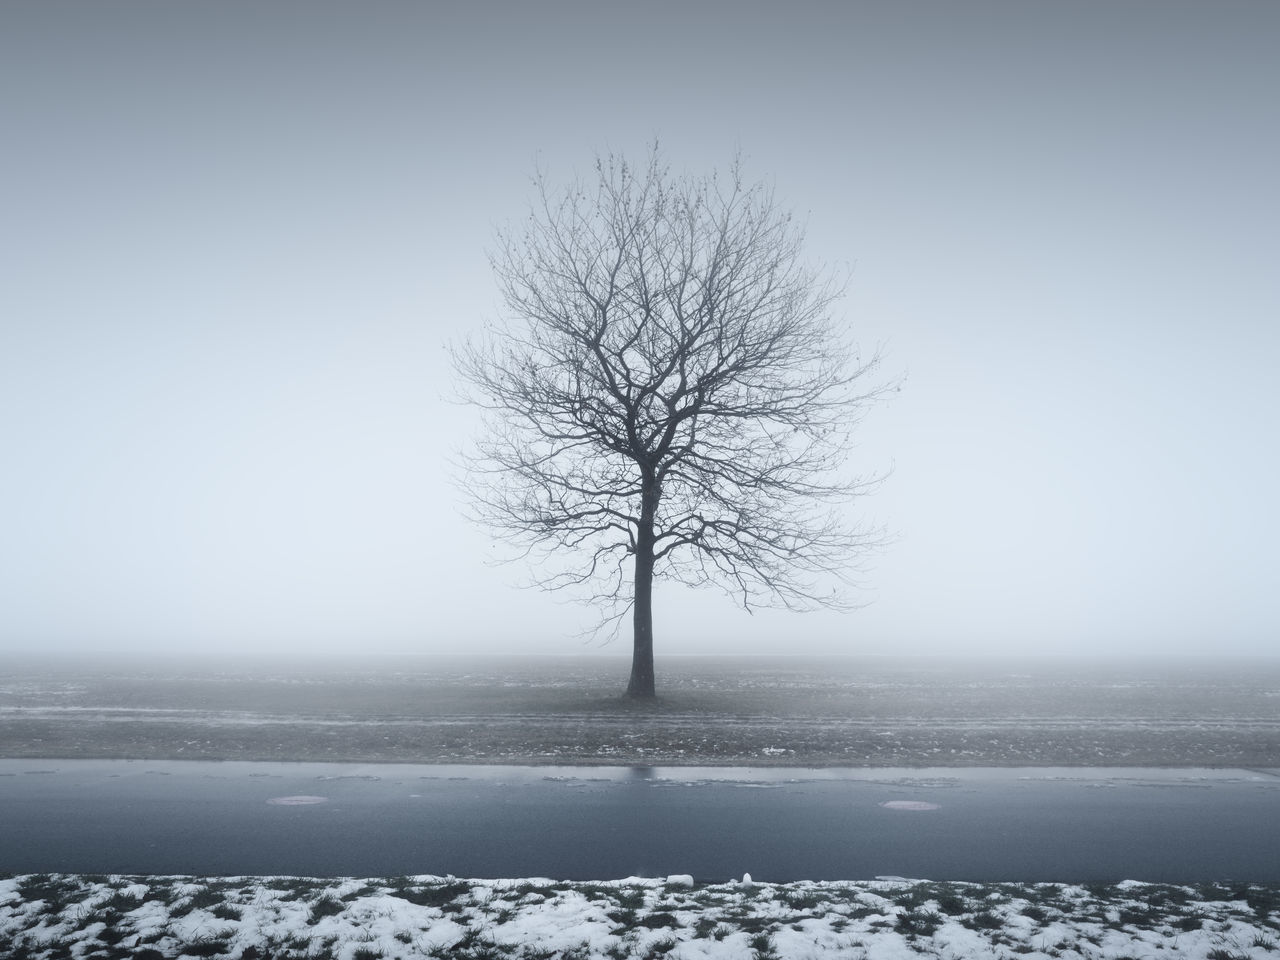 bare tree on field during winter Bare Tree Beauty In Nature Branch Clear Sky Cold Temperature Day Isolated Landscape Lone Majestic Muted Colors Nature No People Outdoors Philipp Dase Remote Scenics Snow Solitude Tranquil Scene Tranquility Tree Tree Trunk Winter